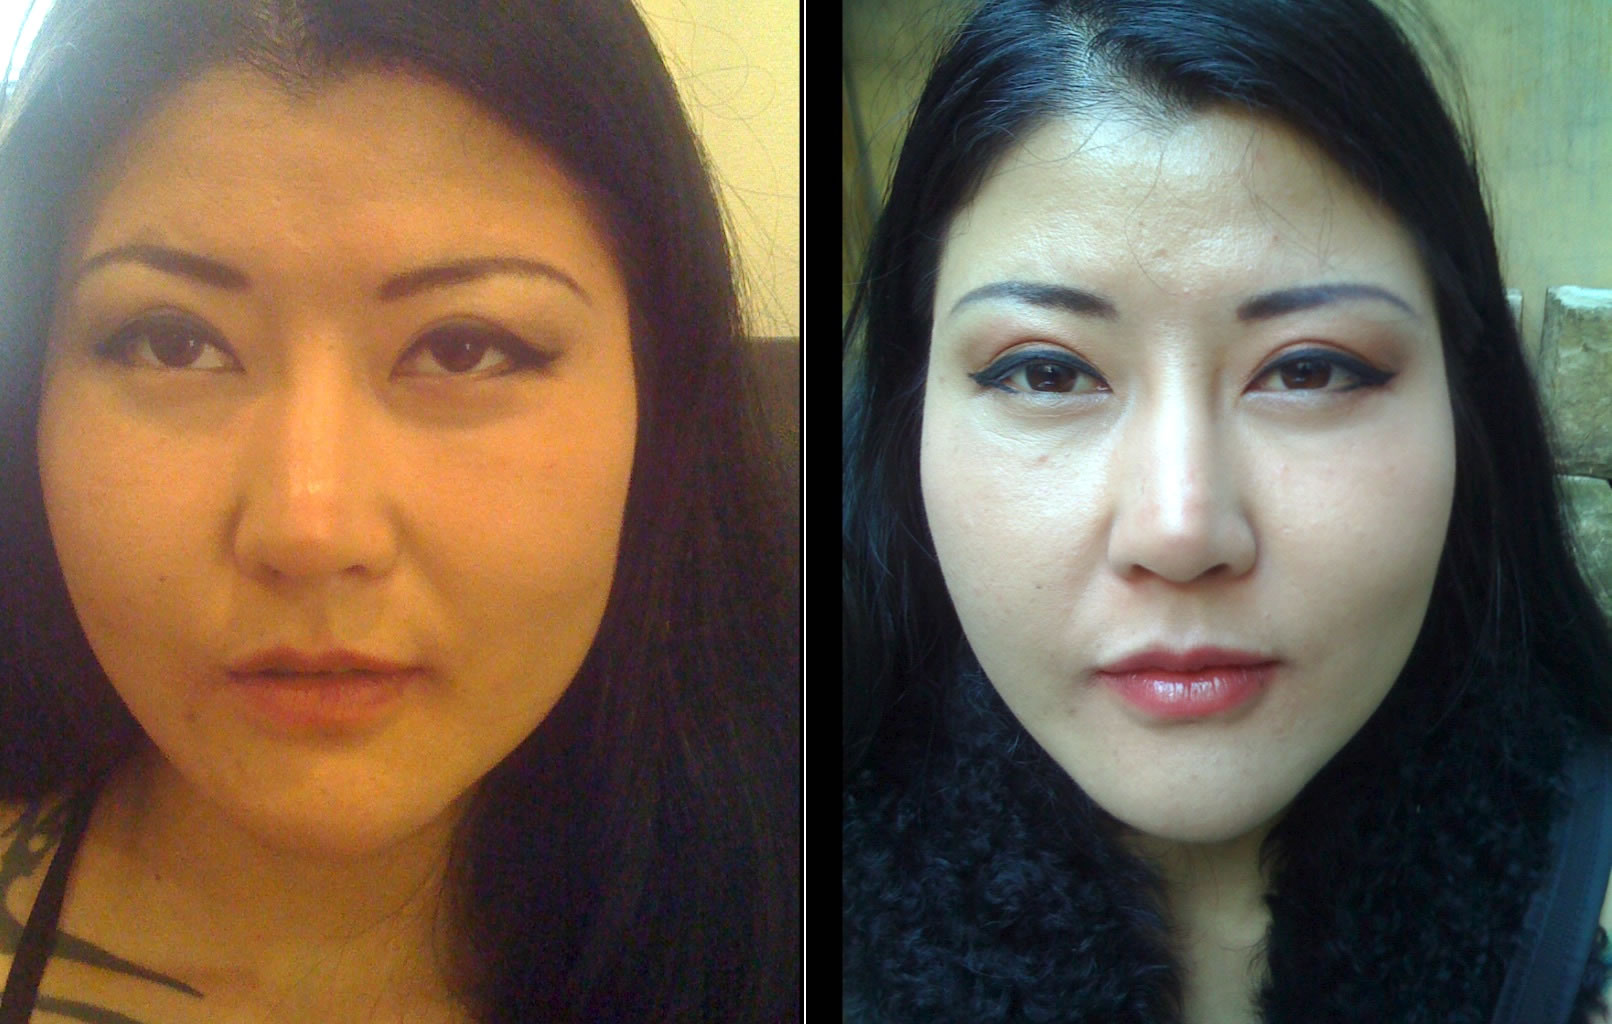 Jawline slimming using wrinkle injections